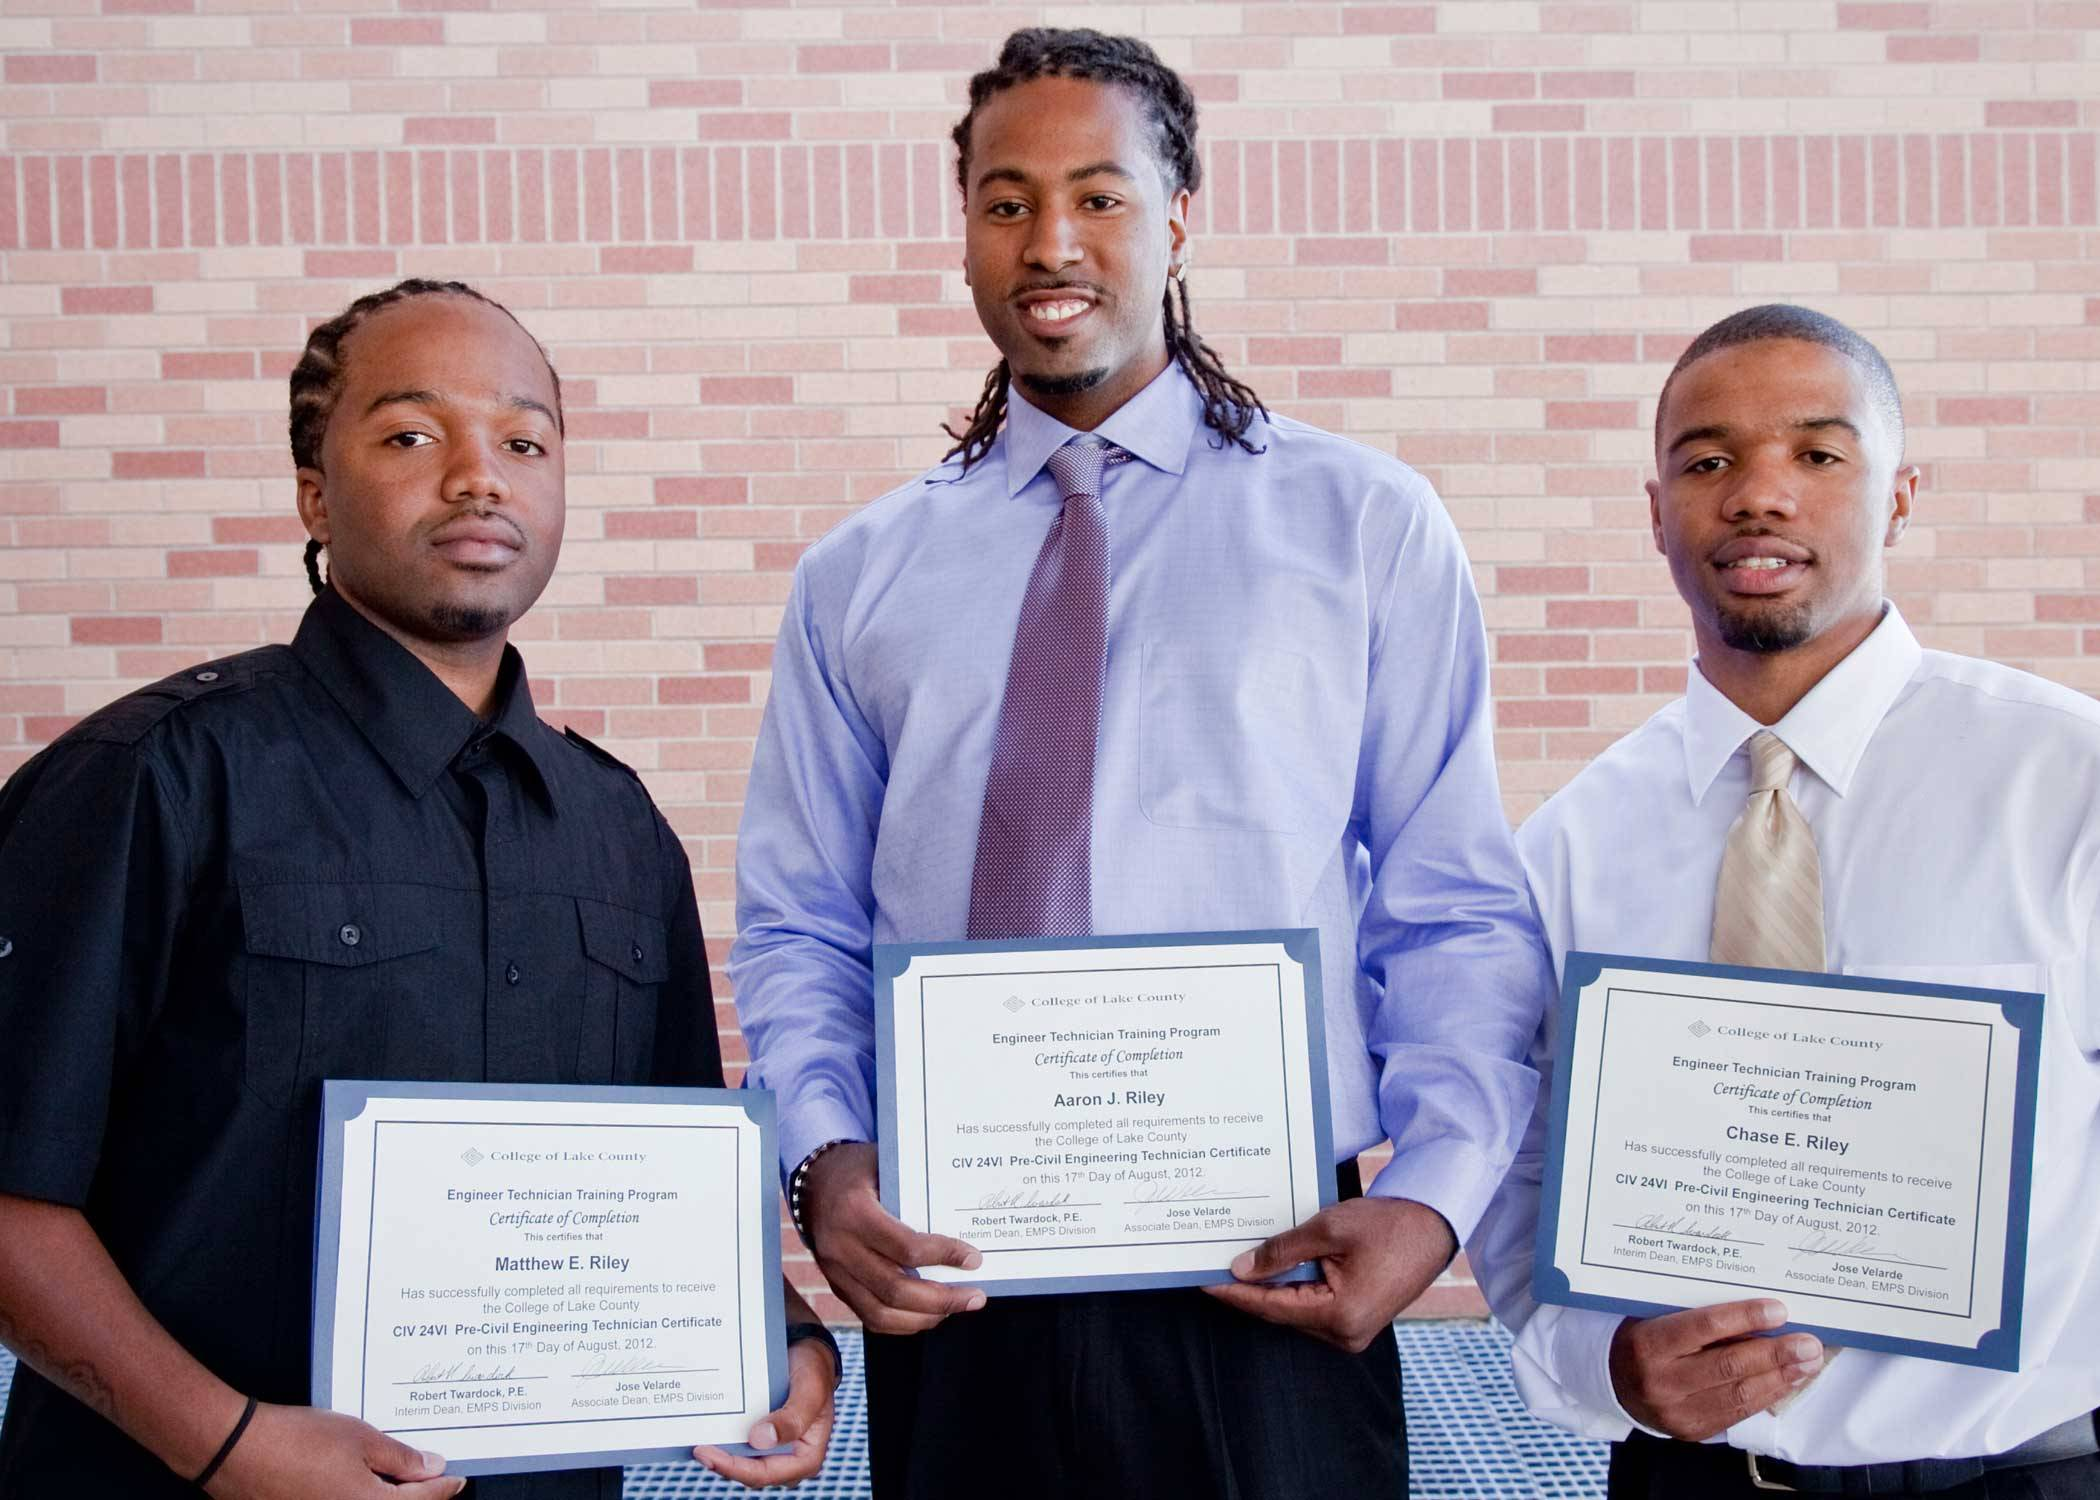 The Riley brothers graduated from the 2012 Engineering Technician Training program at CLC.